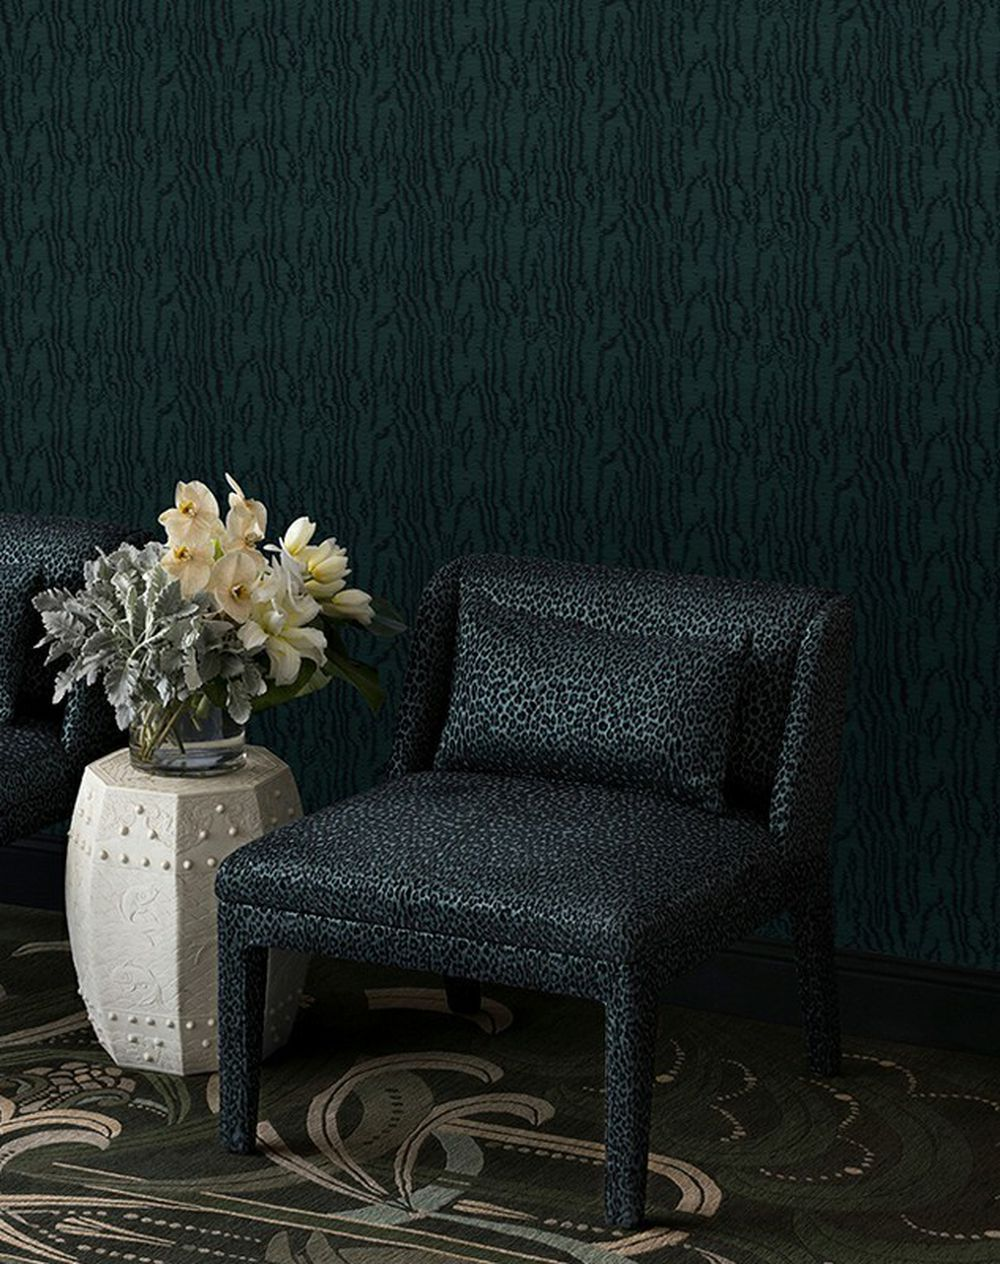 Photo of the fabric Trianon Wallpaper Emerald in situ by Catherine Martin by Mokum. Use for Wall Covering. Style of Abstract, Decorative, Pattern, Texture